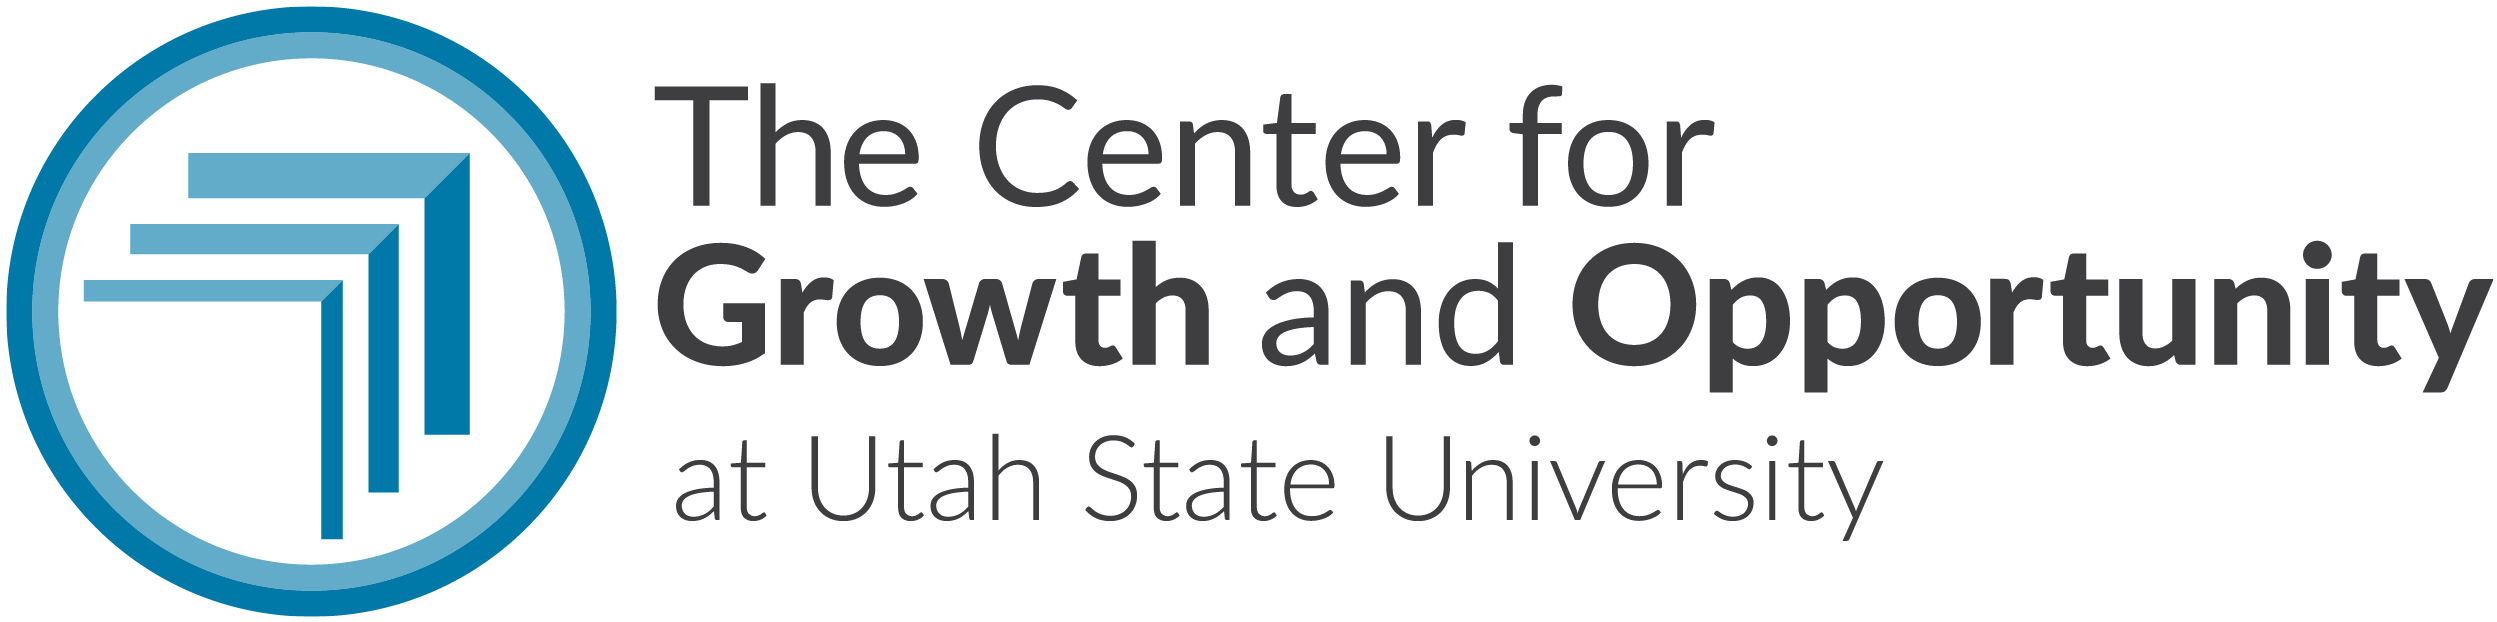 The Center for Growth and Opportunity at Utah State University